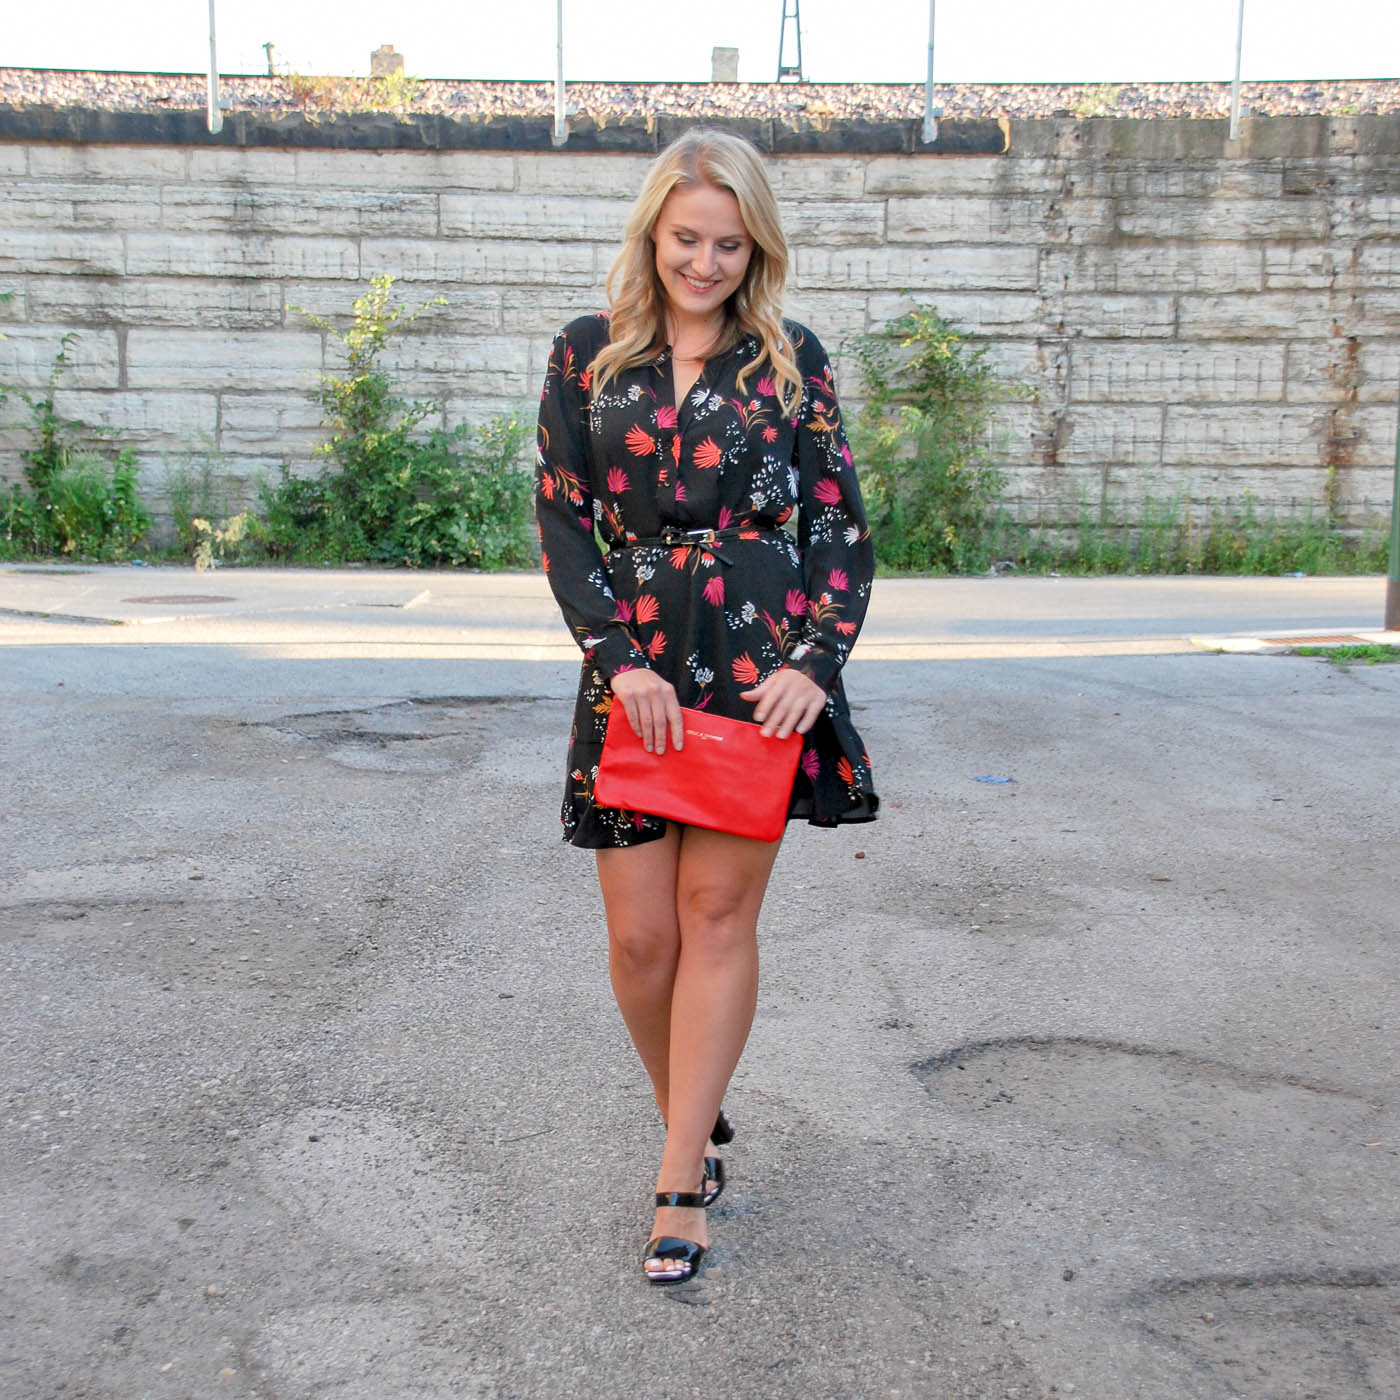 Floral dresses for a night out this fall season